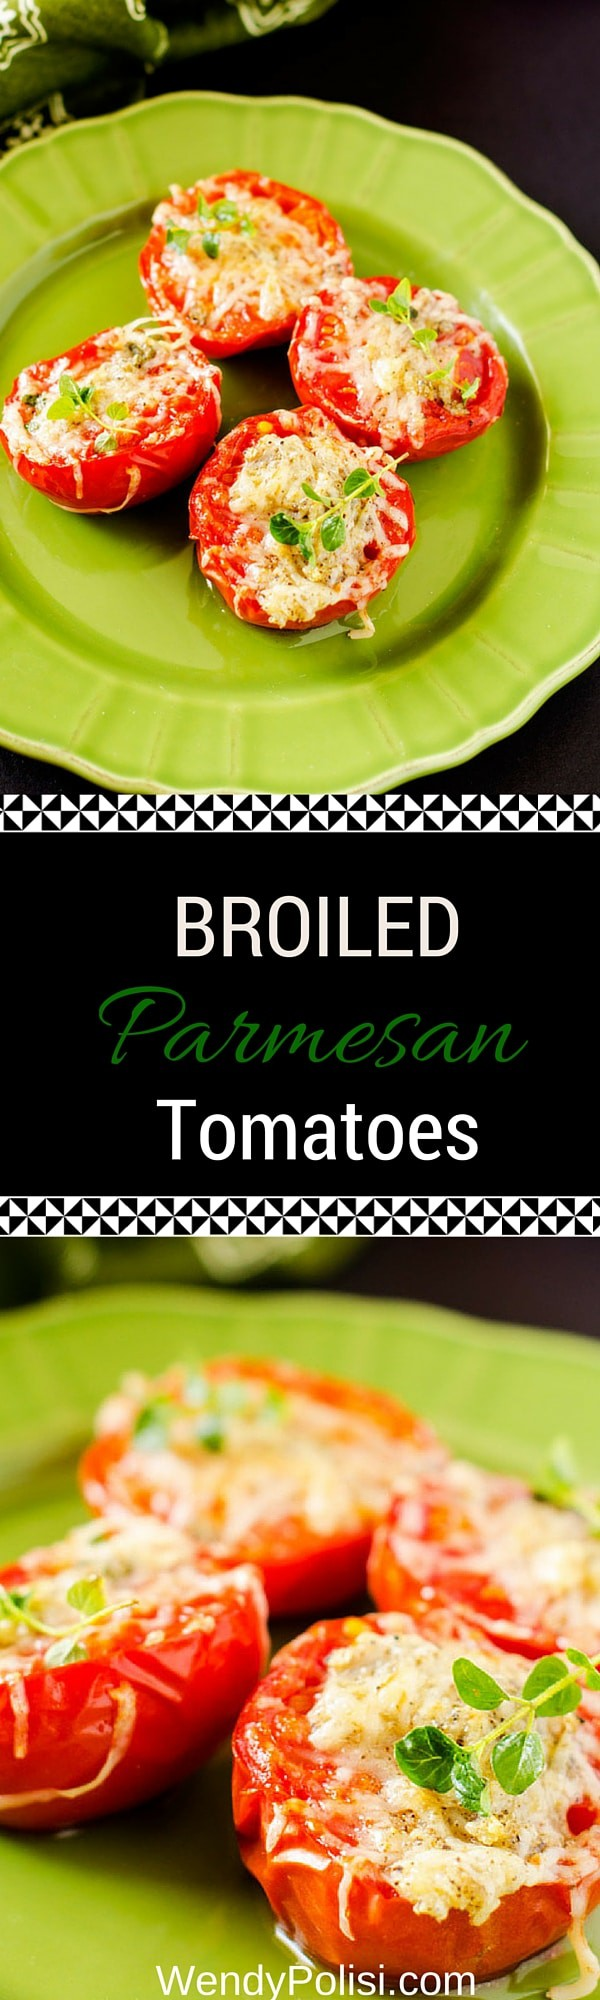 Broiled Parmesan Tomatoes - This appetizer or side dish is so simple and delicious!